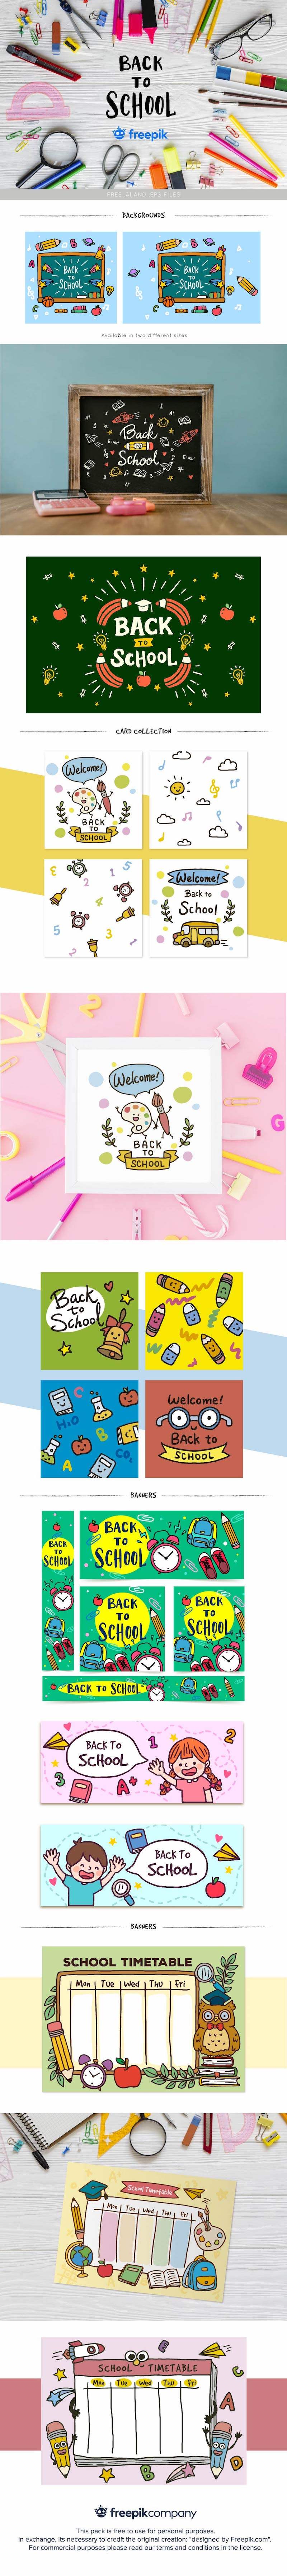 free back to school vectors